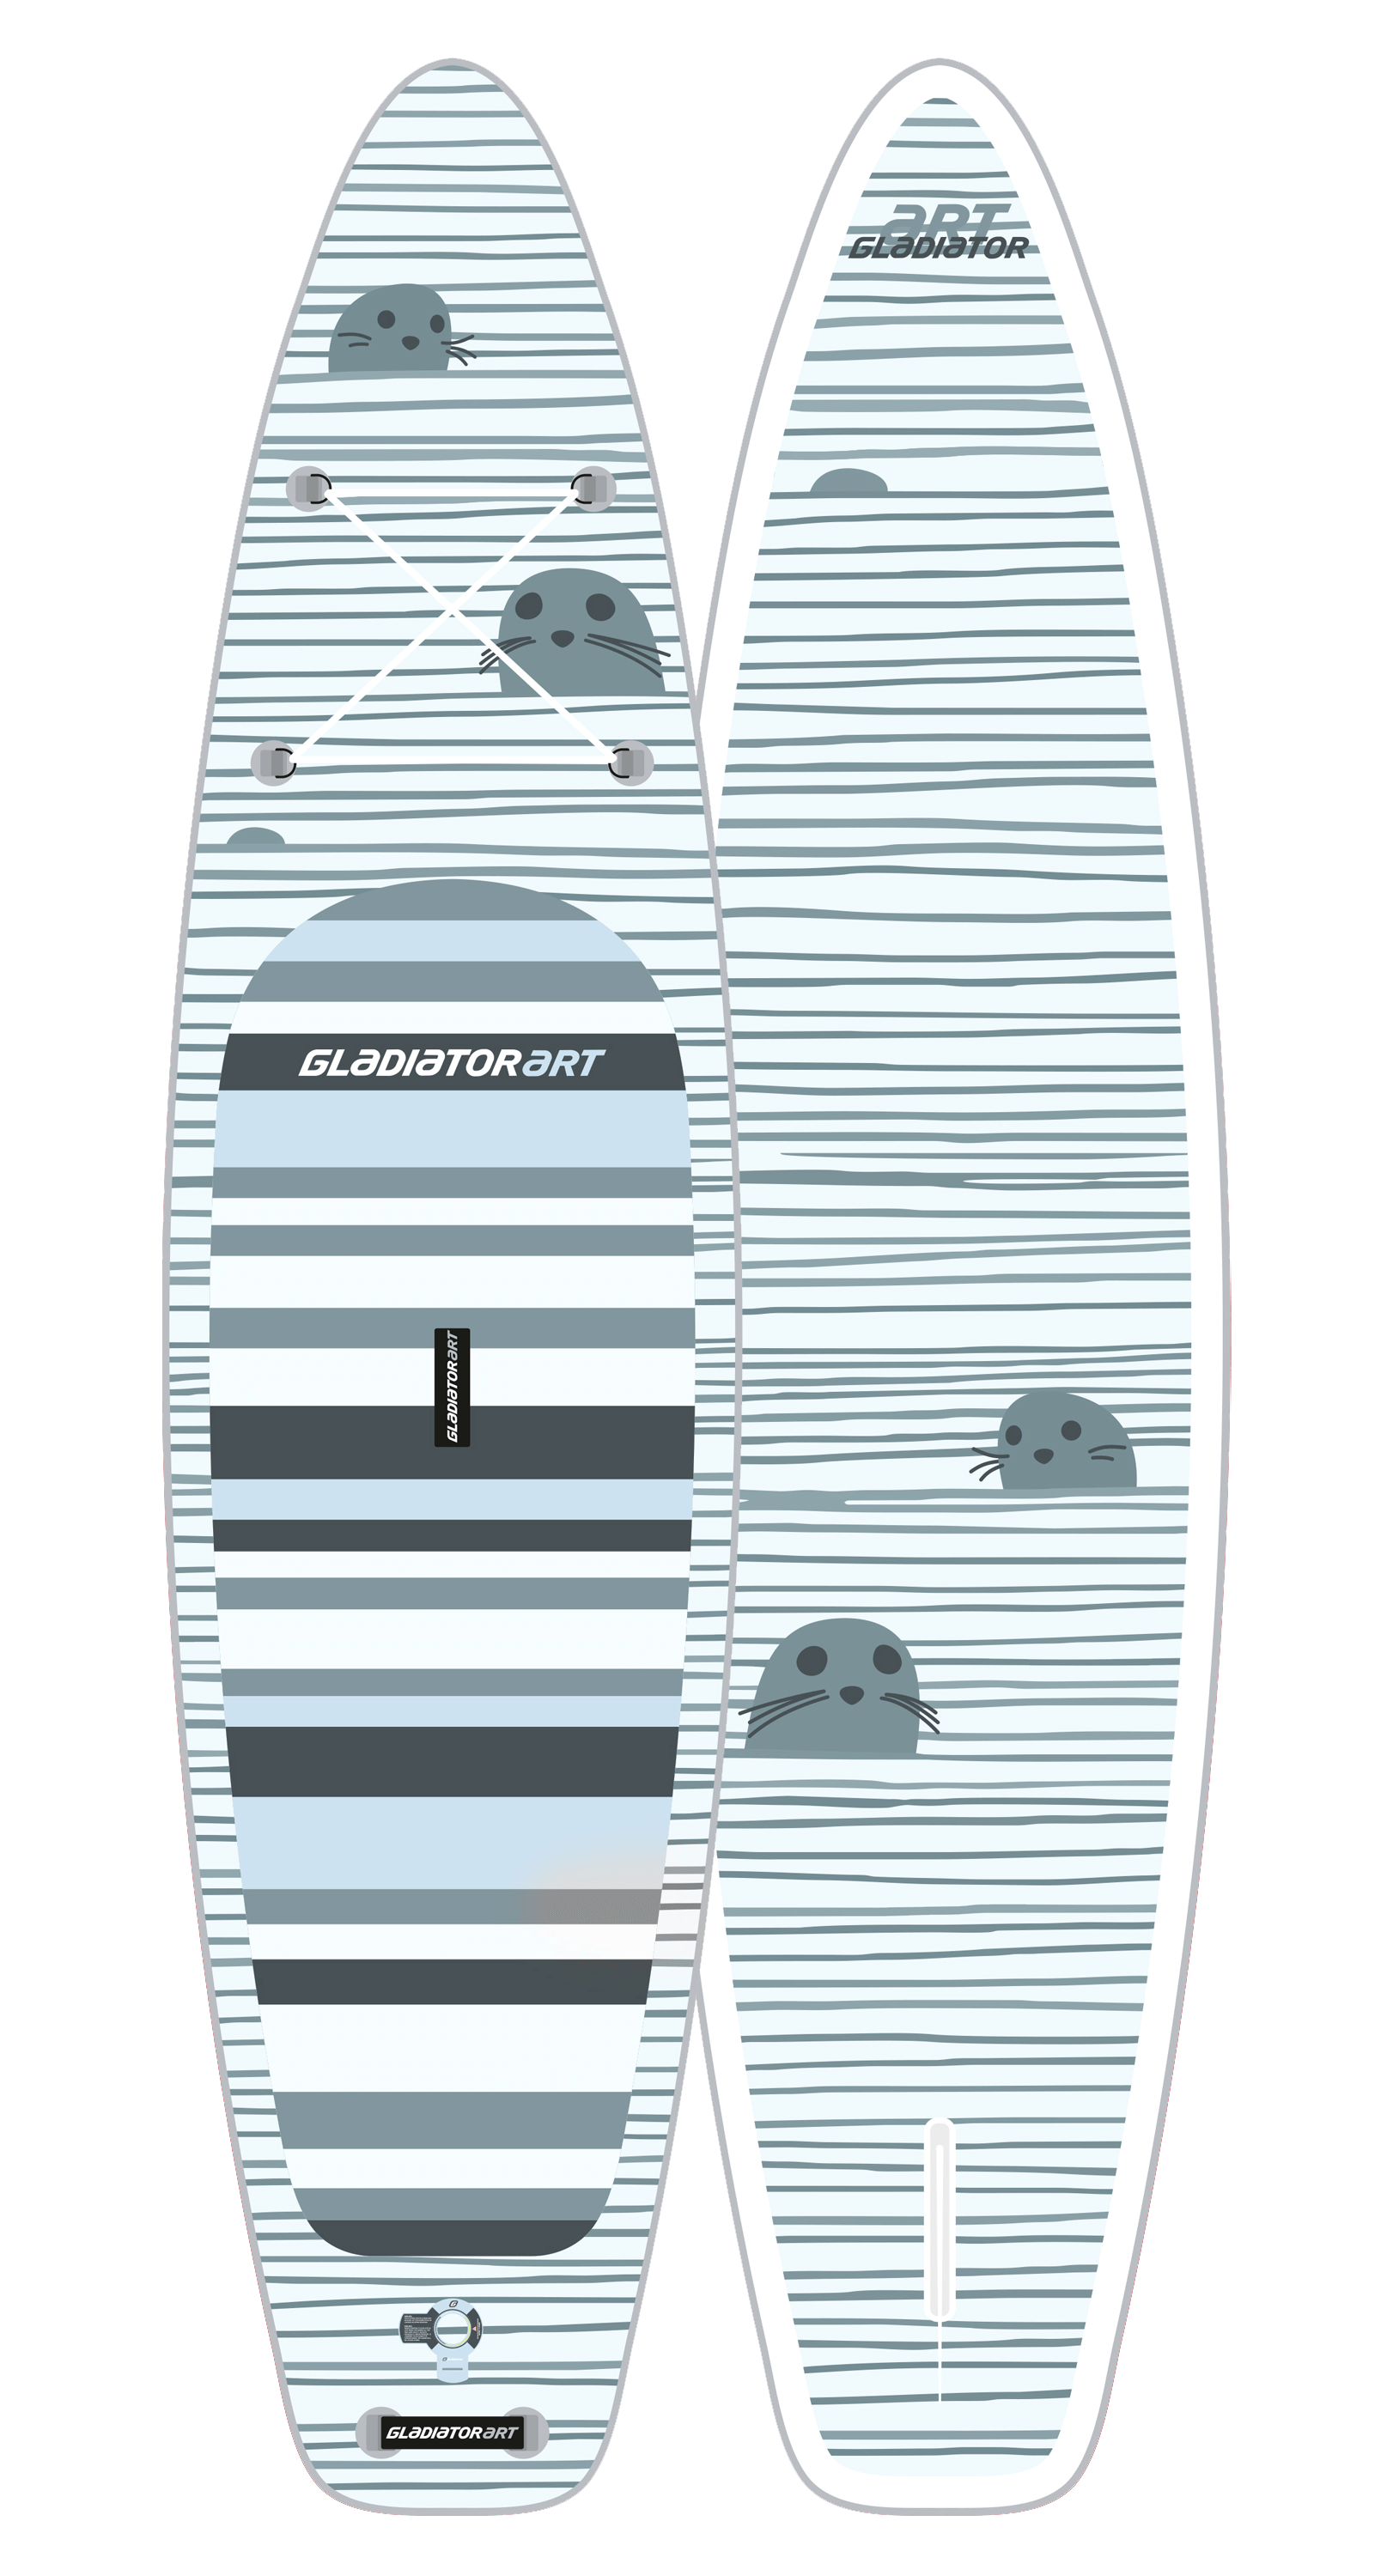 Надувной SUP борд GLADIATOR ART SEAL 11.2